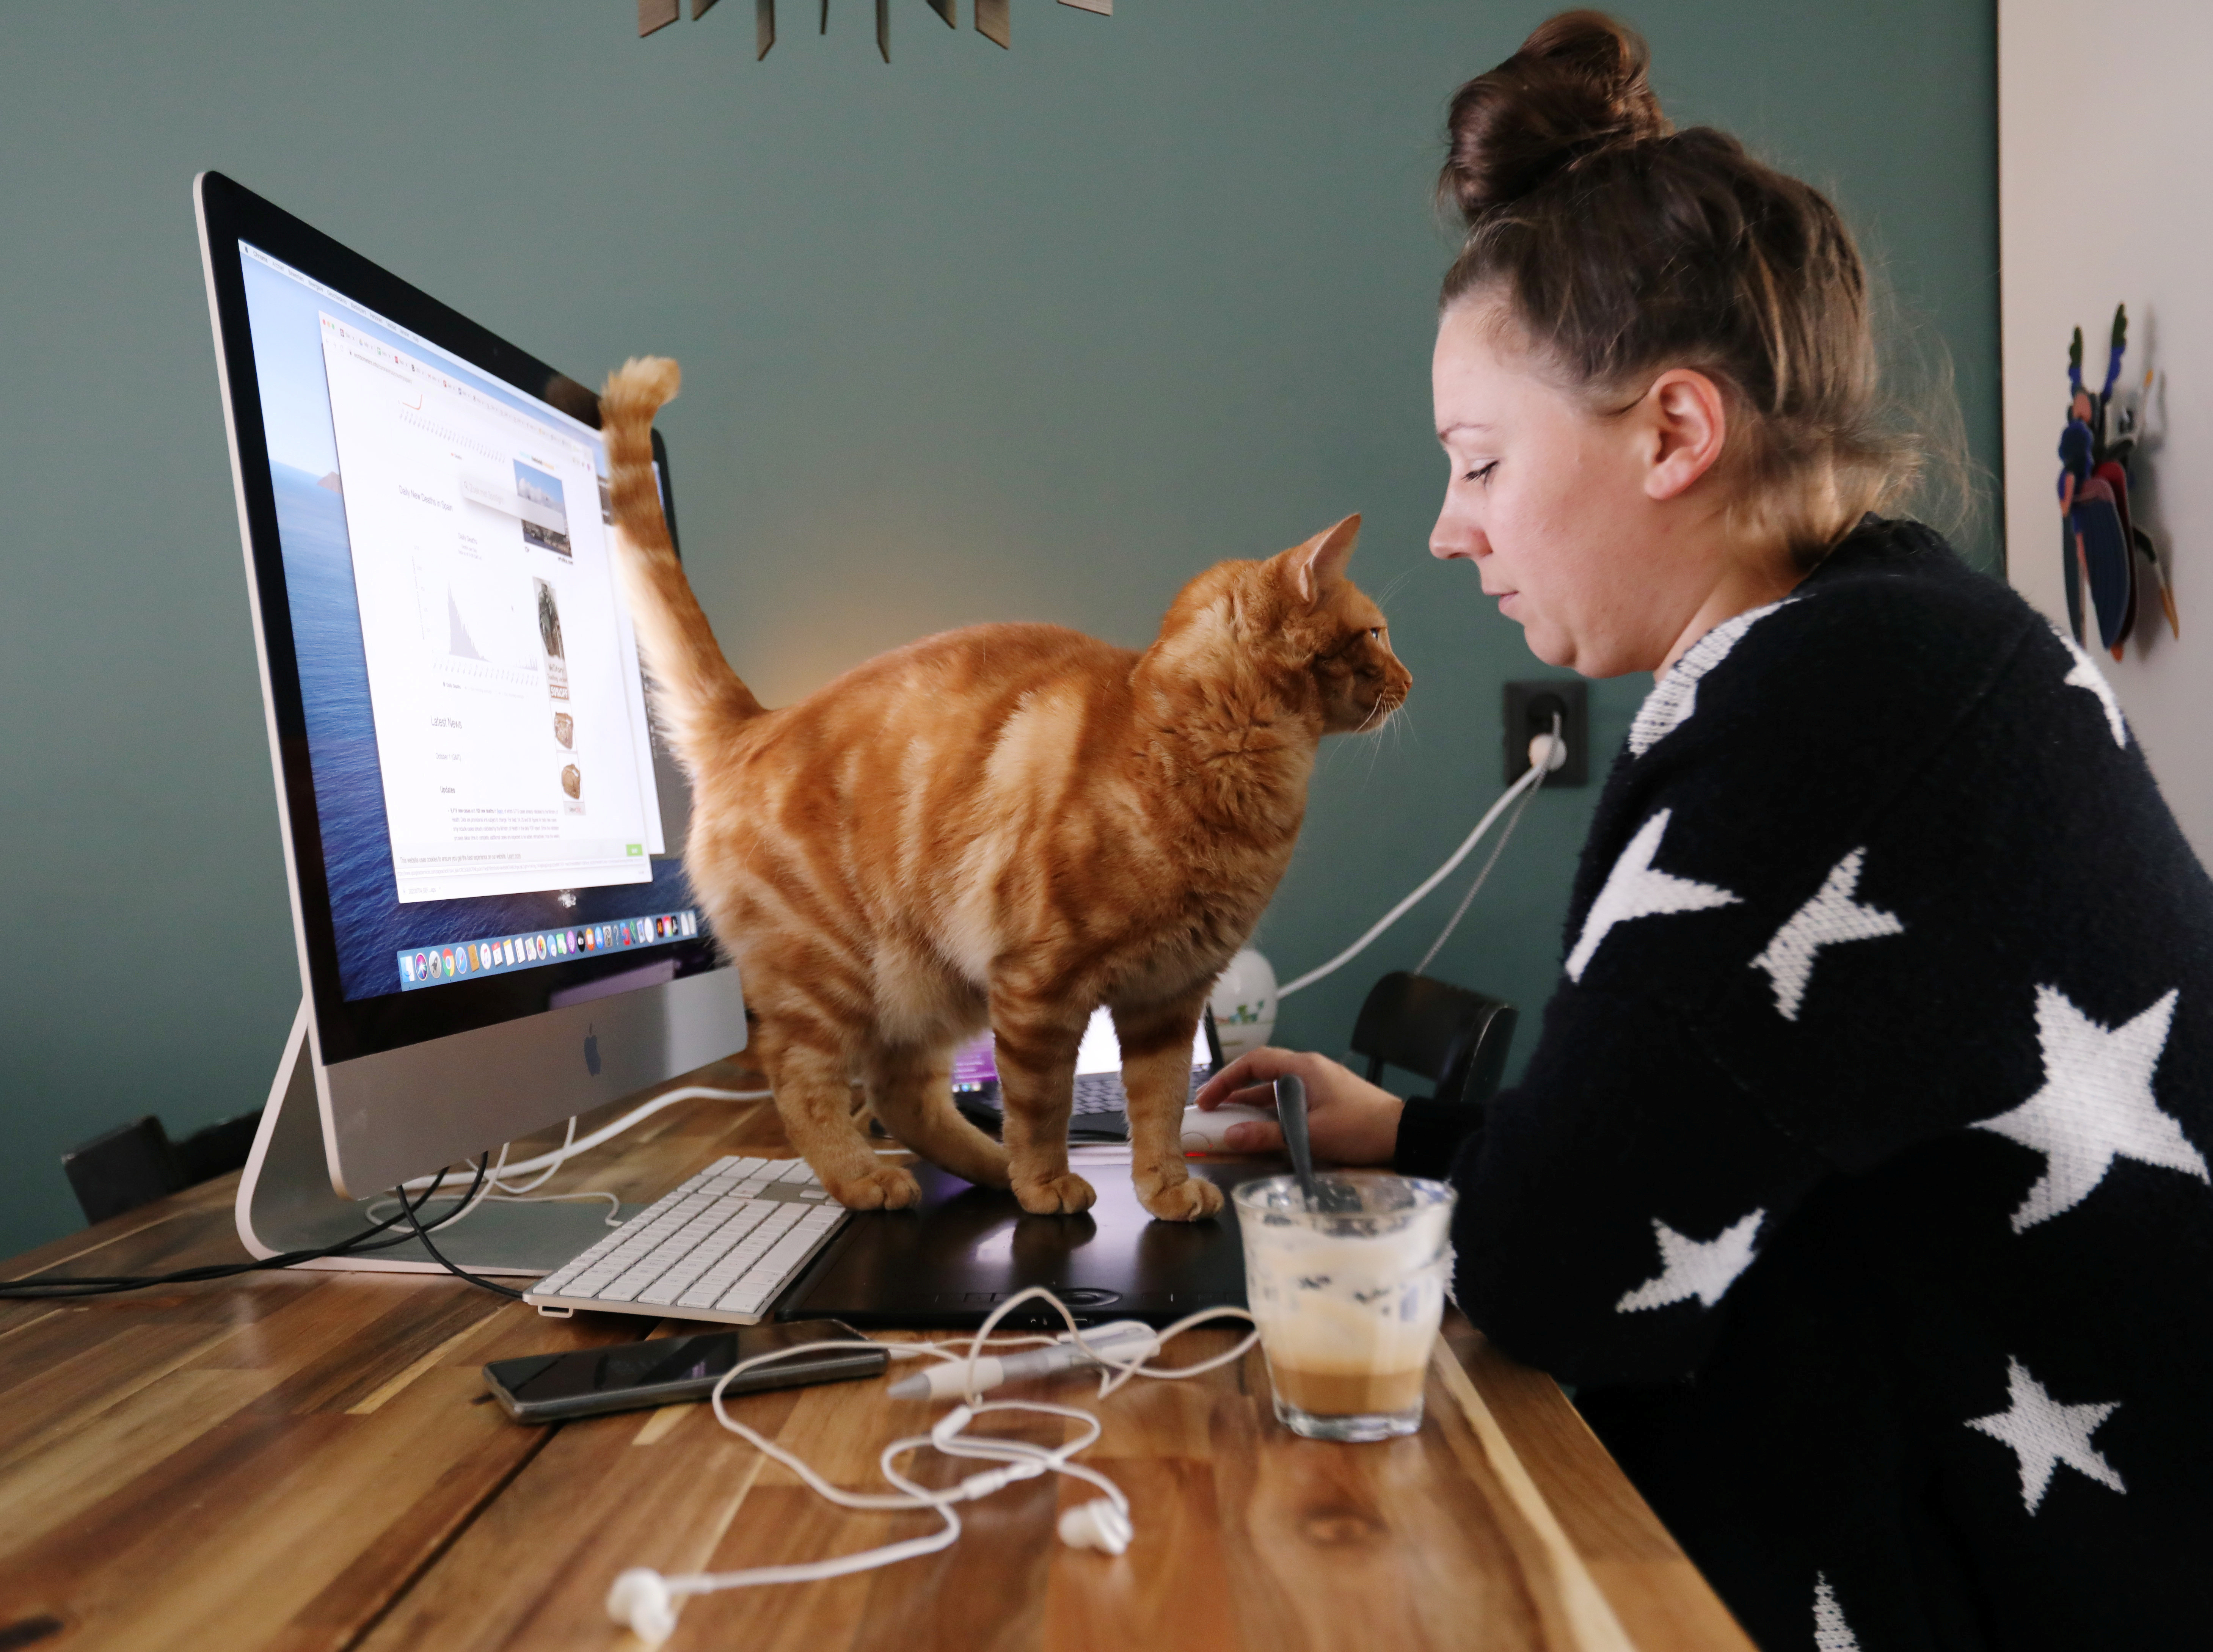 a woman works at her computer at home with a cat on her keyboard